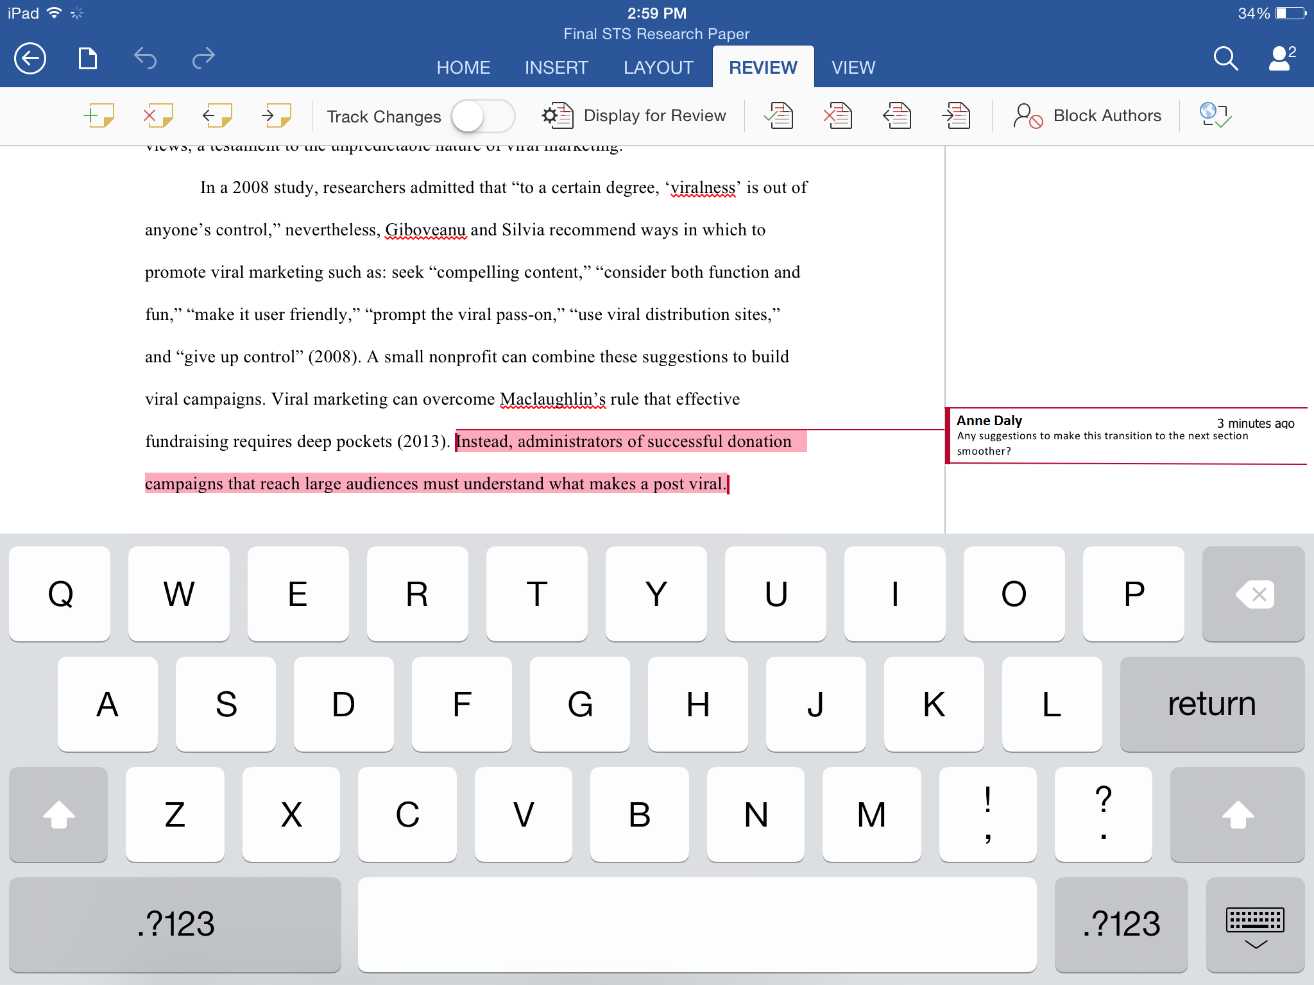 Microsofts Learning Tools For Students Heads To Word On IPad